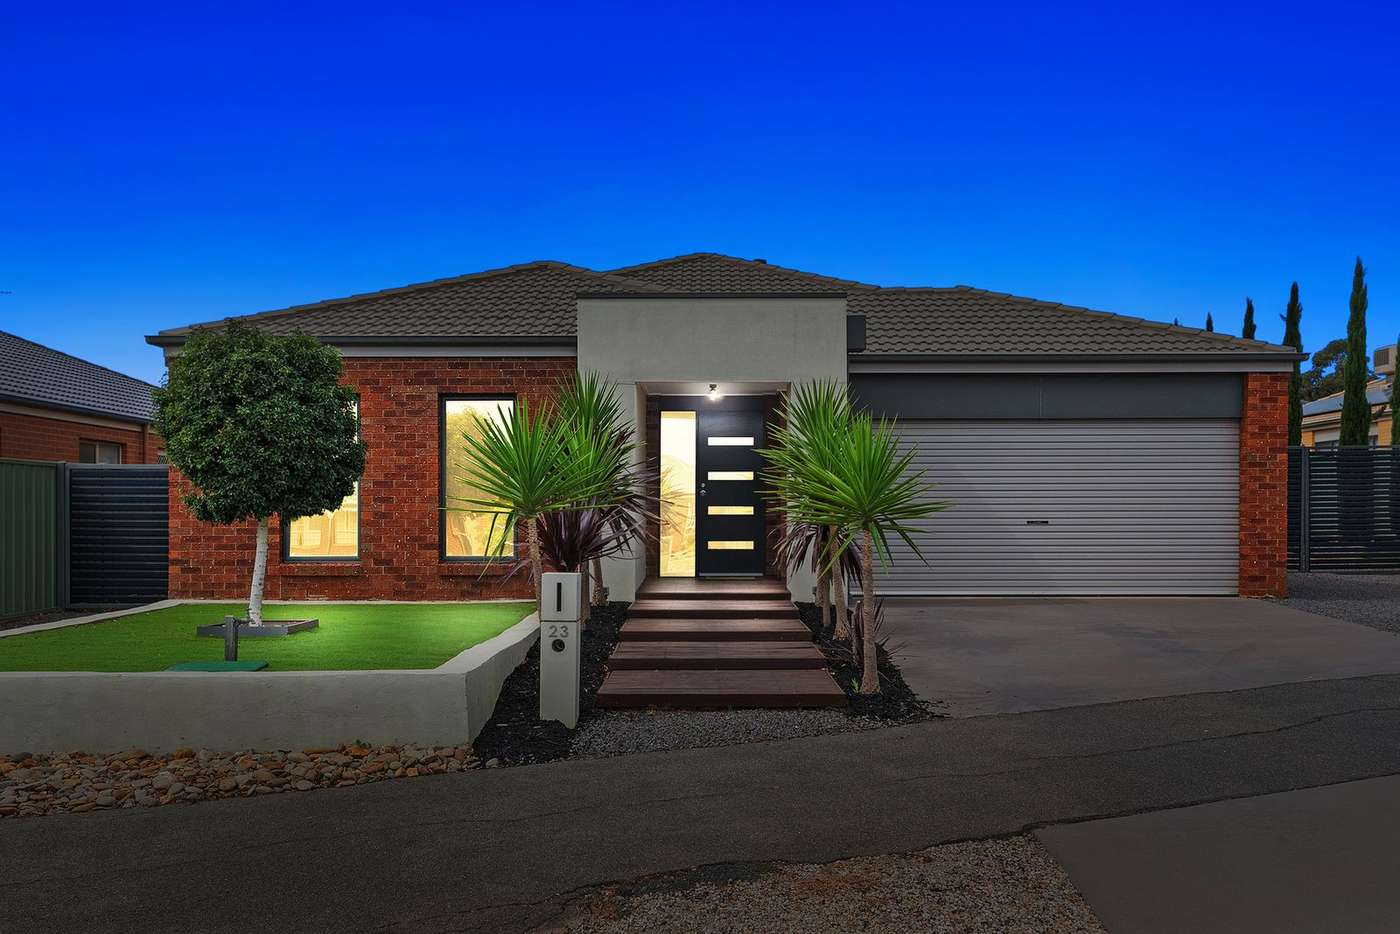 Main view of Homely house listing, 23 Lyndam Avenue, Maiden Gully VIC 3551